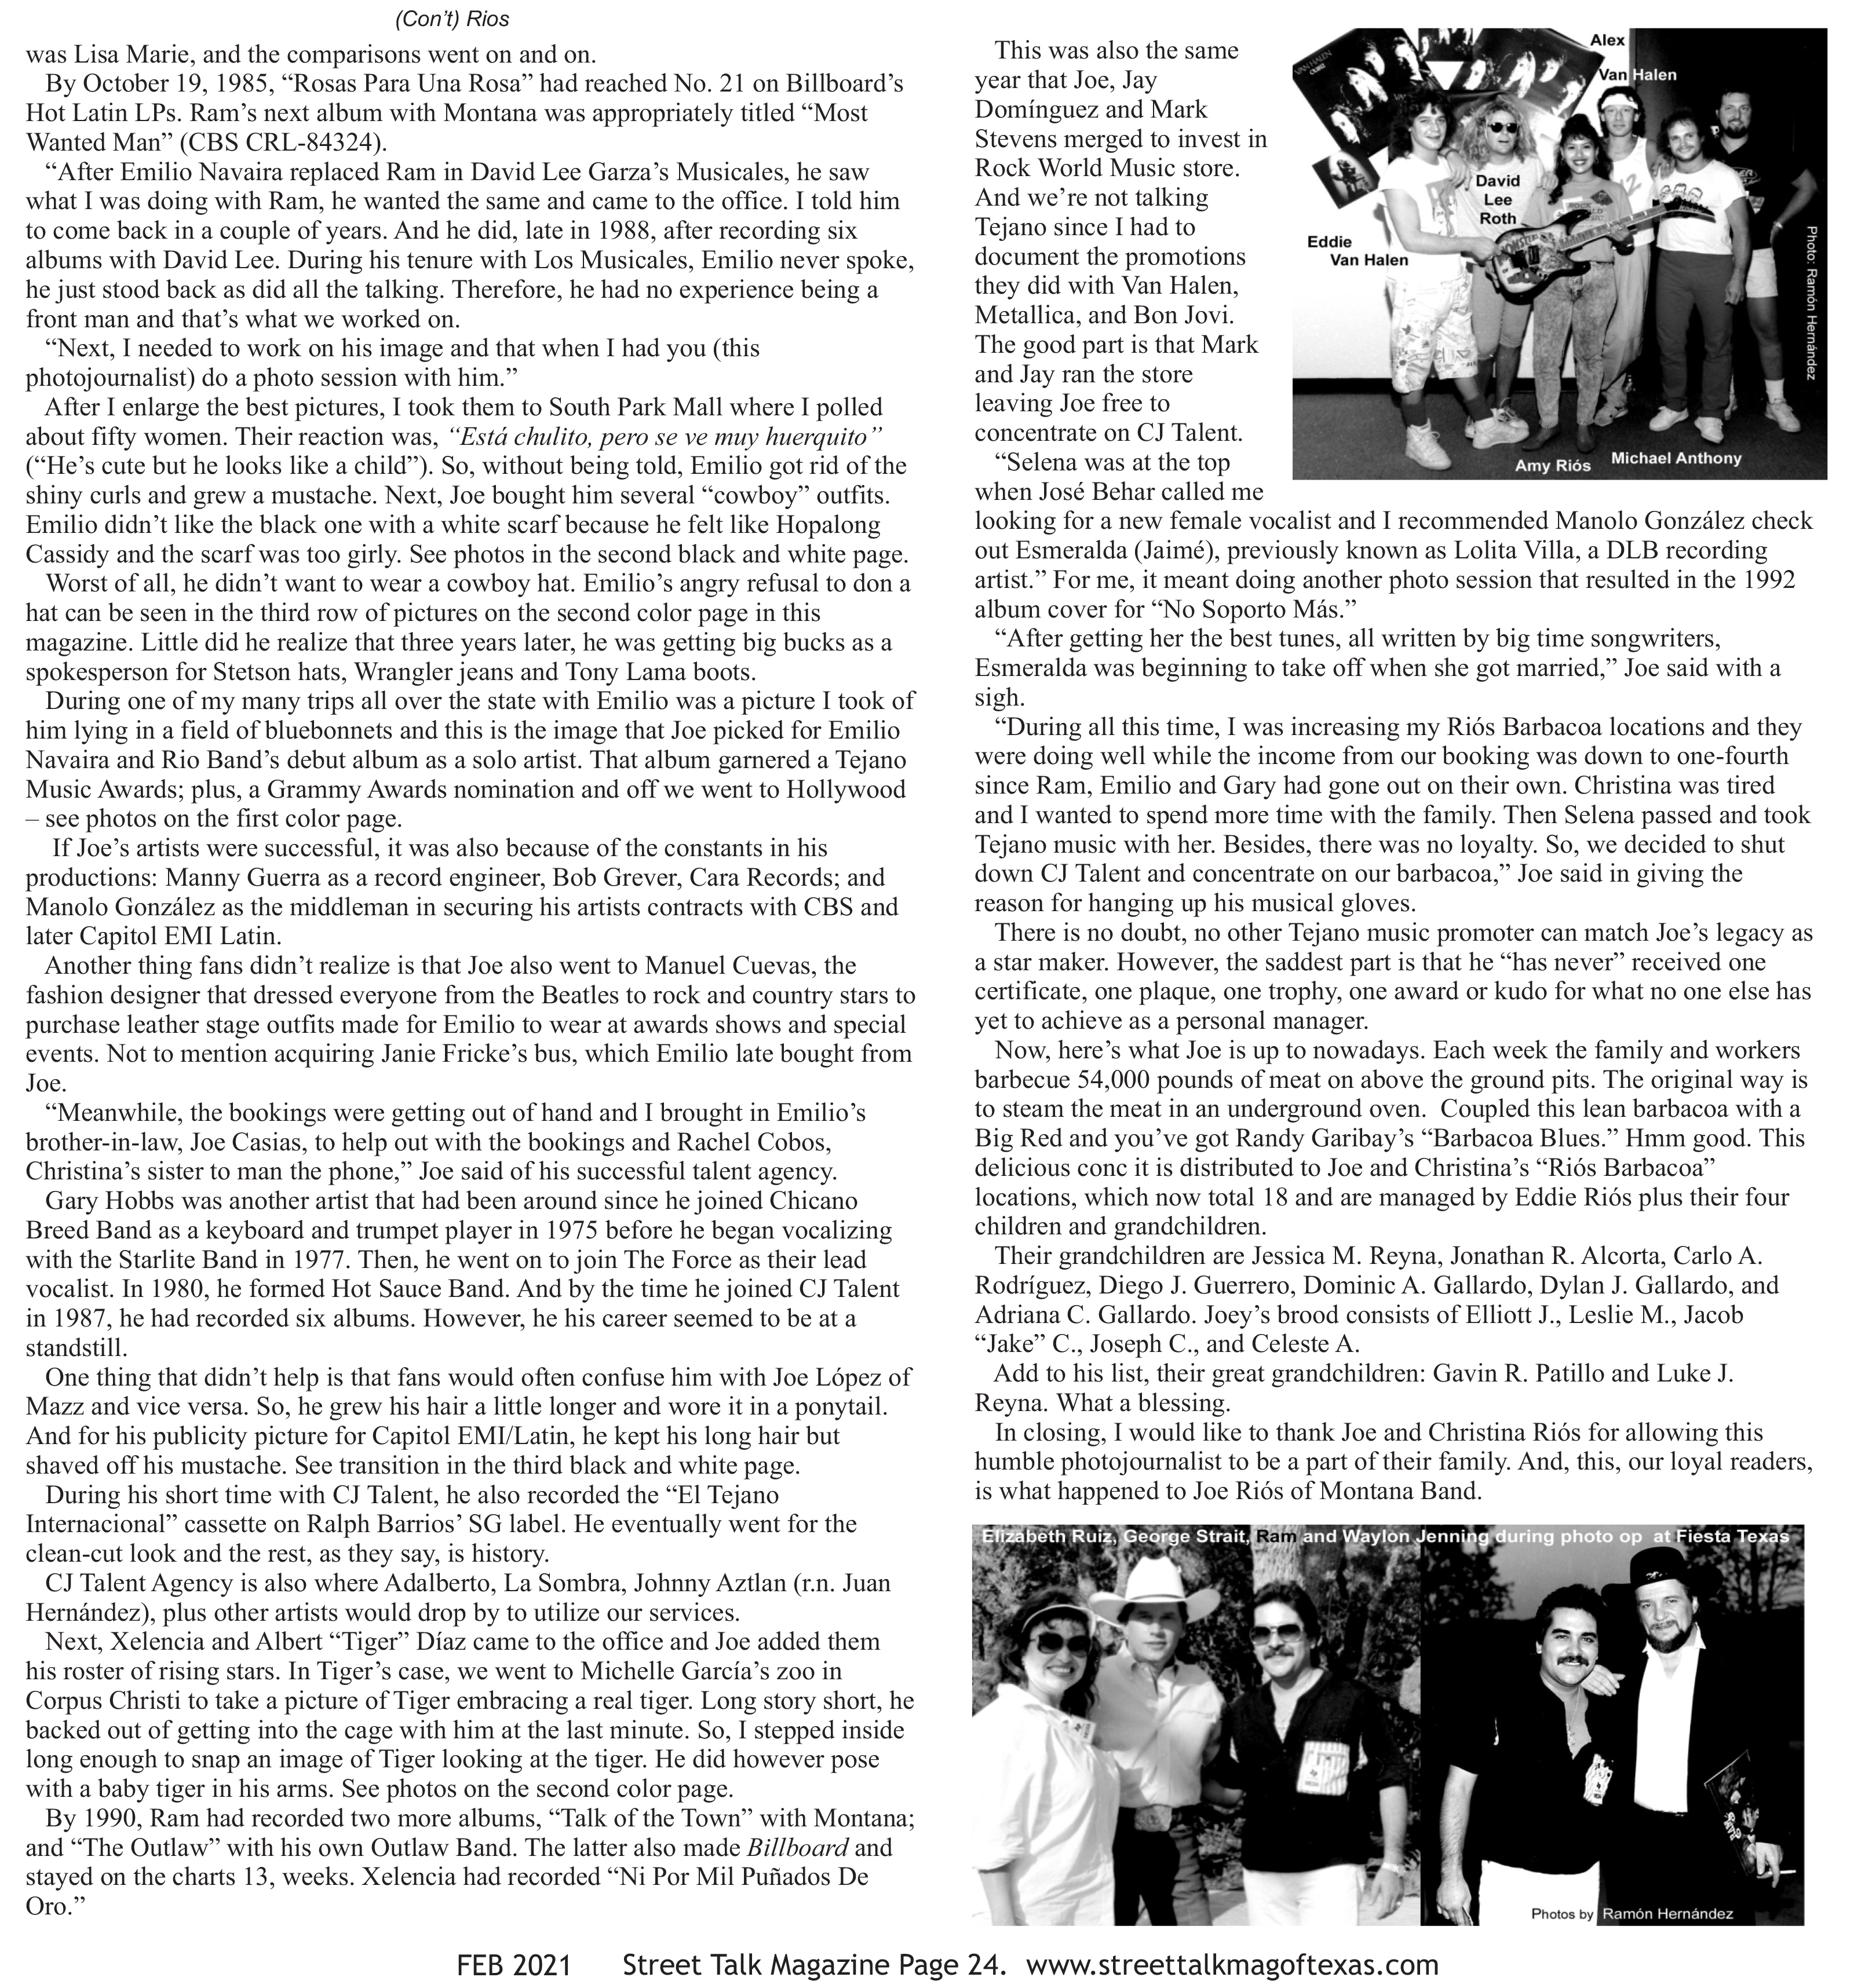 PAGE 24-1